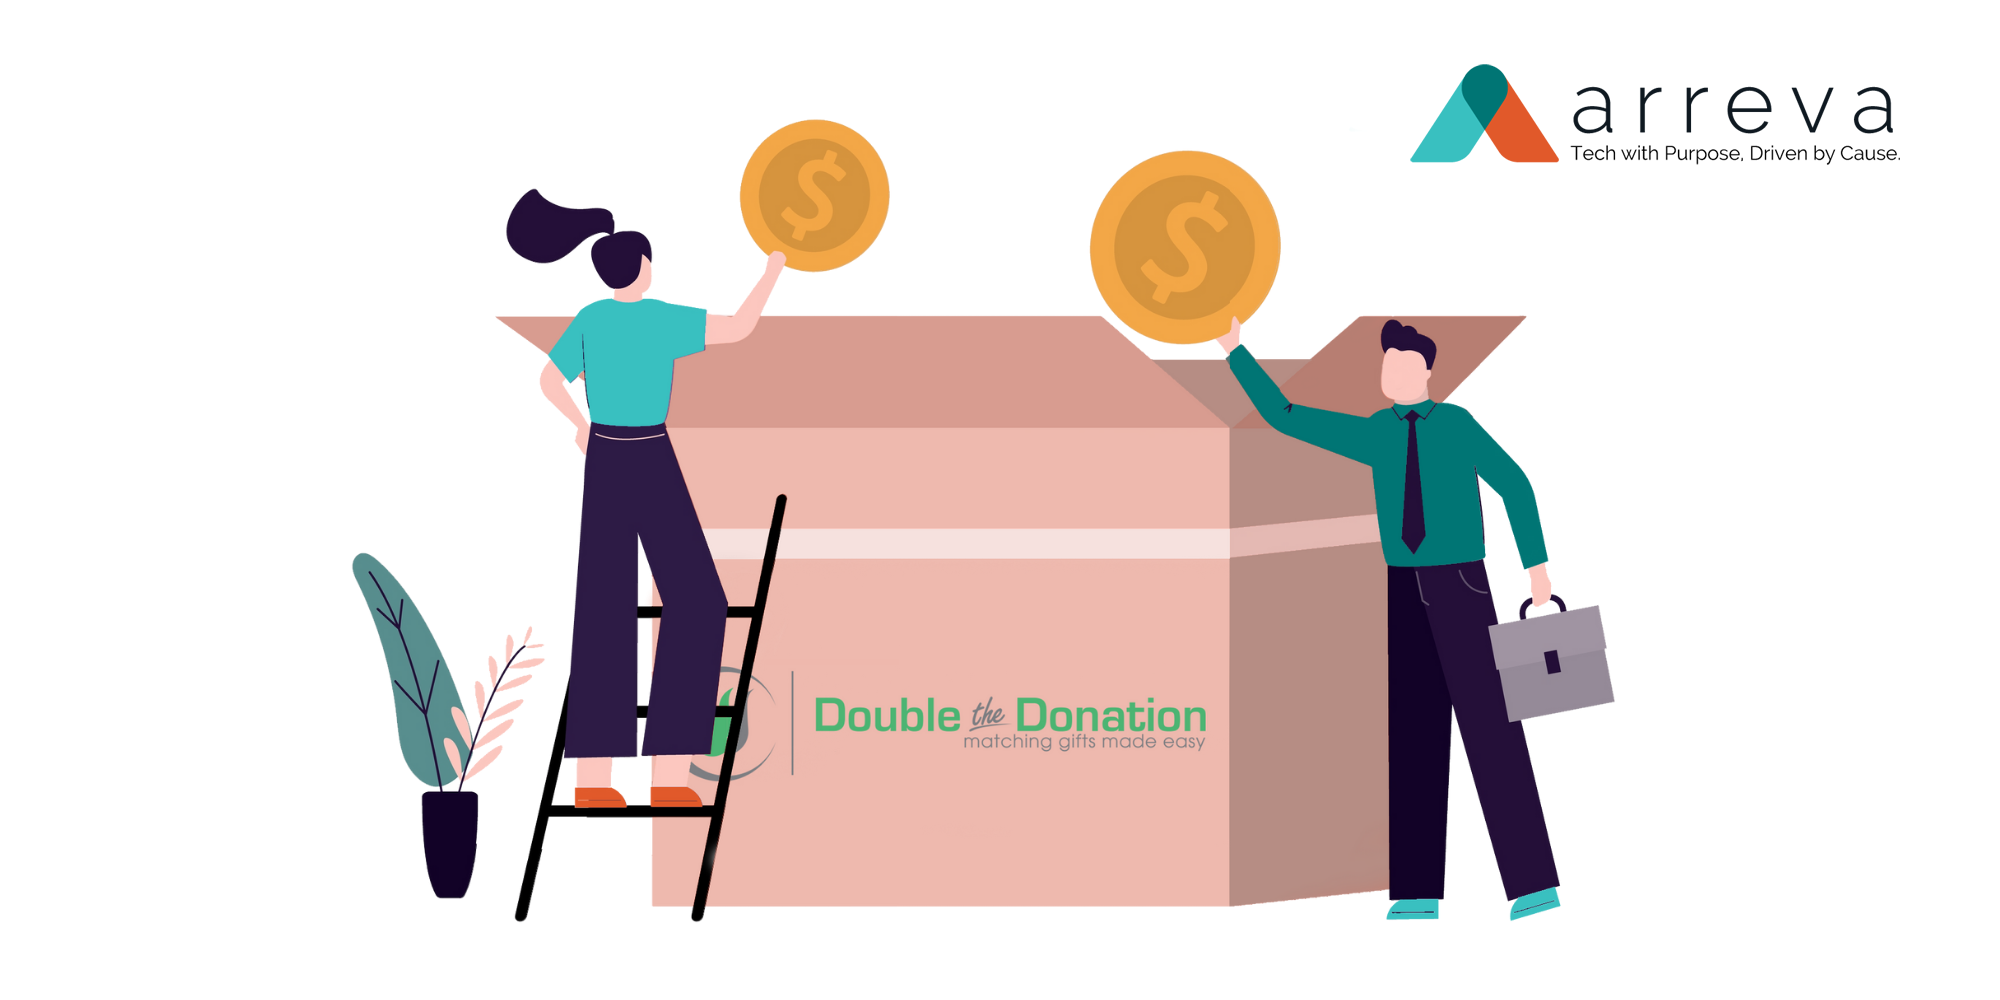 Double the Impact: Best Data to Collect for Matching Gifts